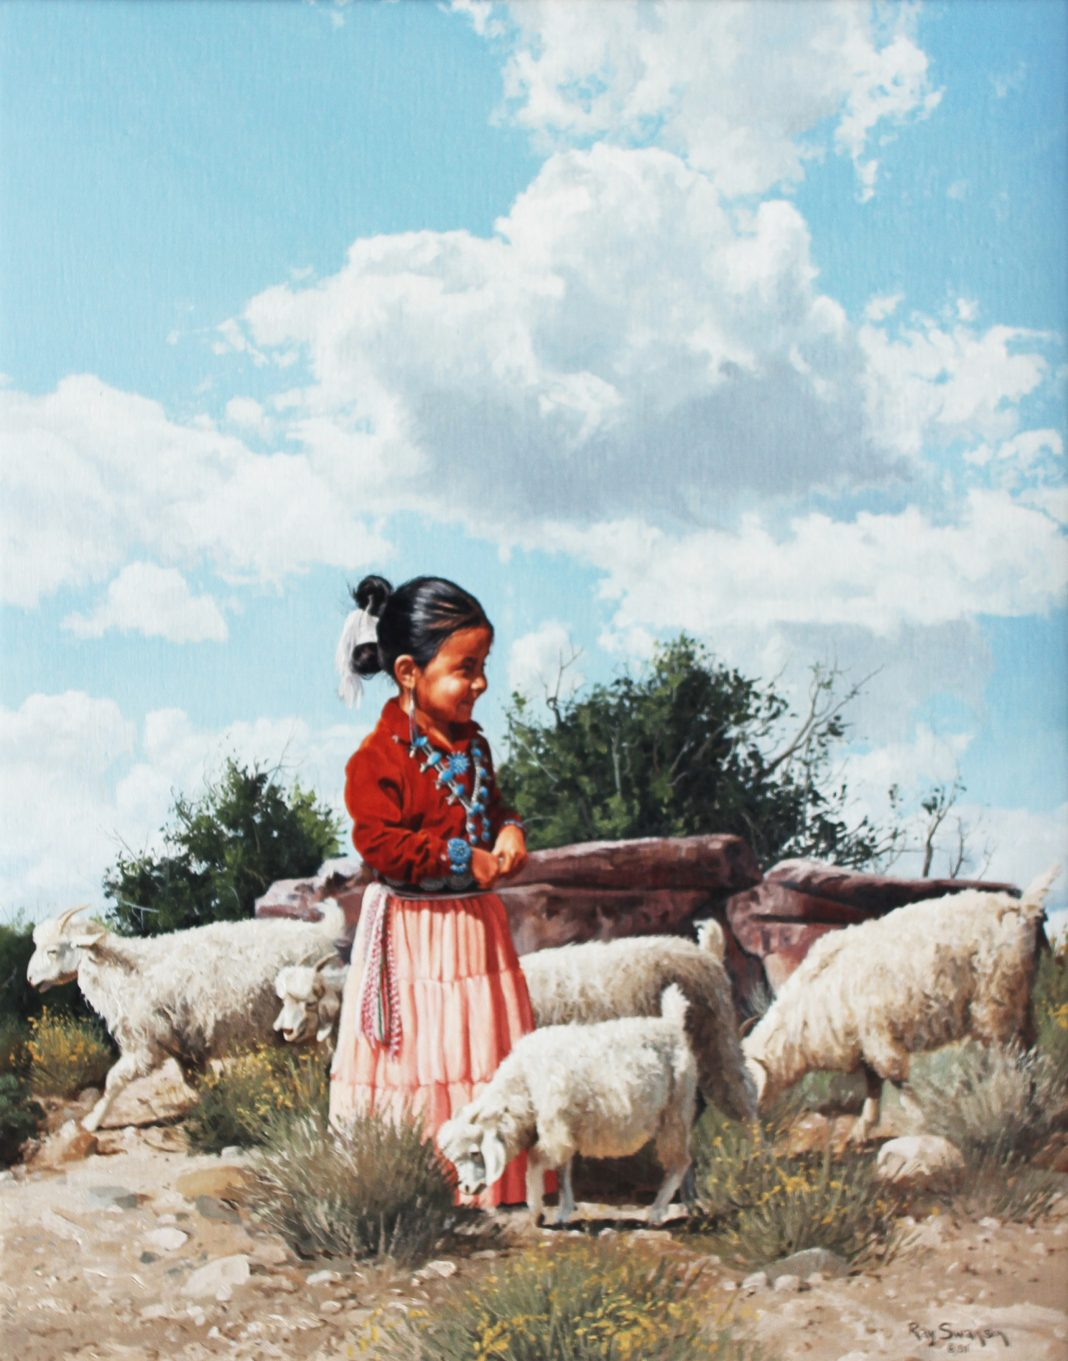 Ray Swanson Young Goat Herder Native American western girl sheep western oil painting landscape clouds